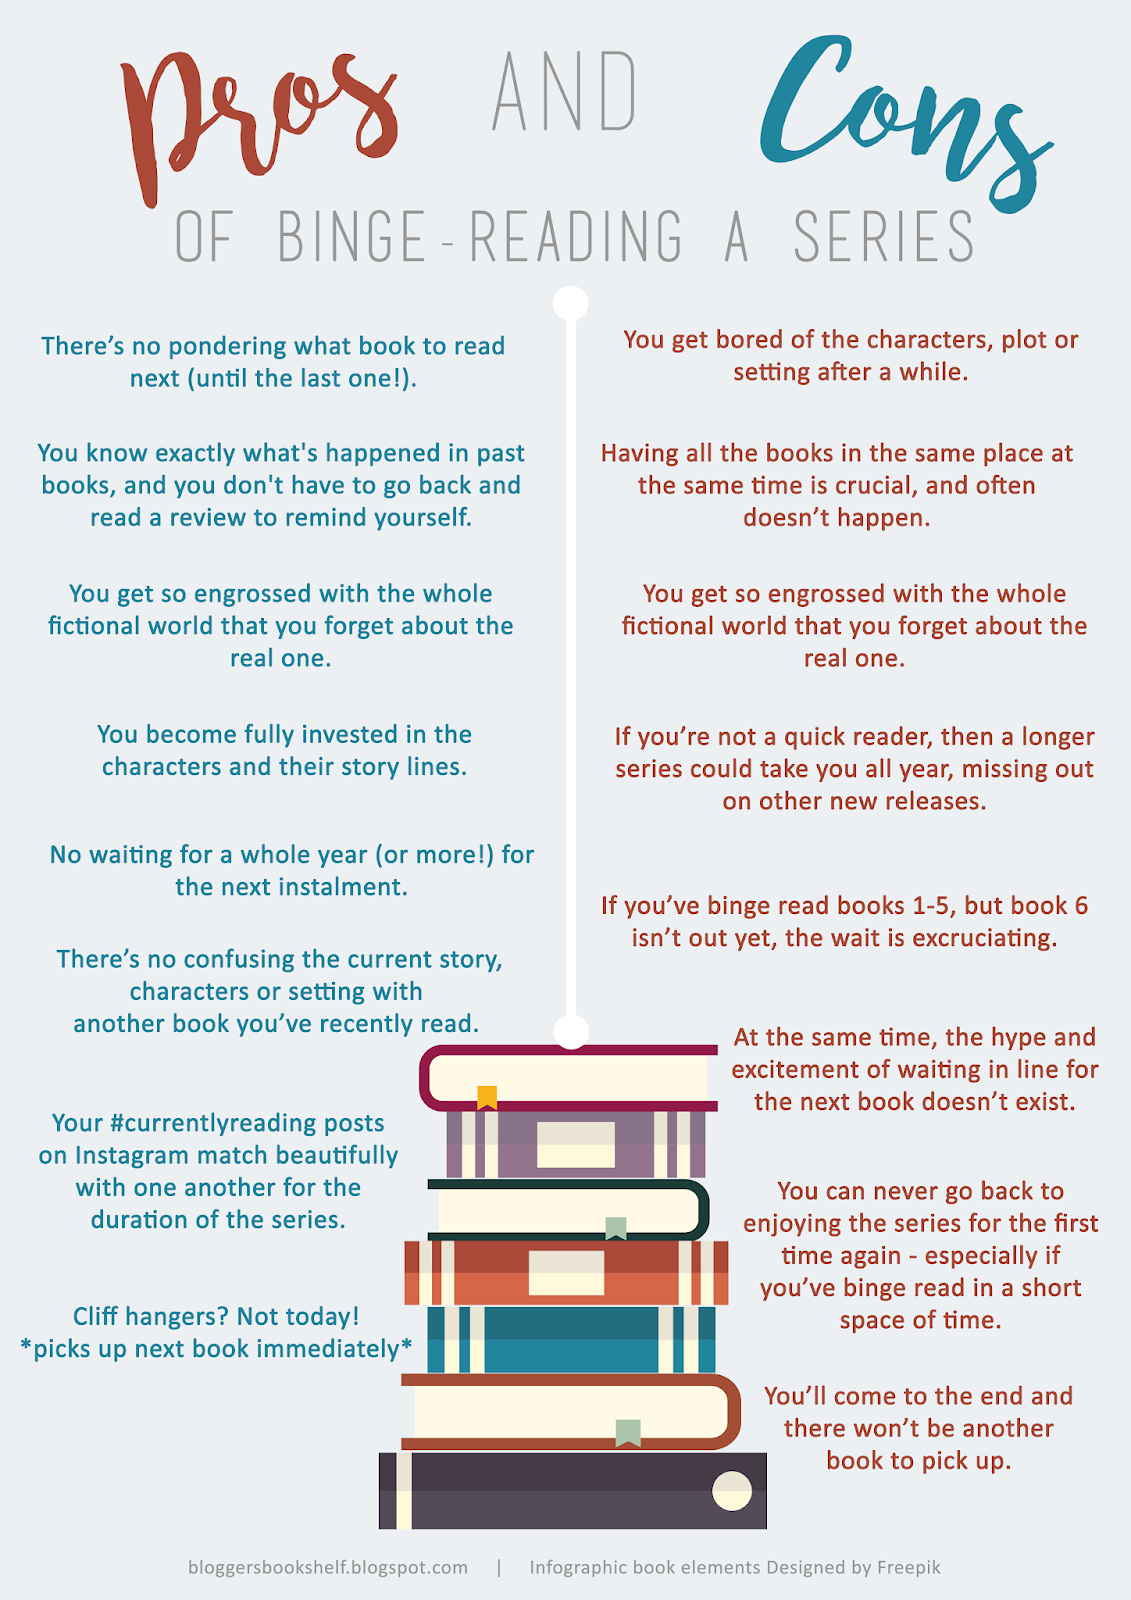 The pros and cons of binge reading a series - Blogger's Bookshelf Features